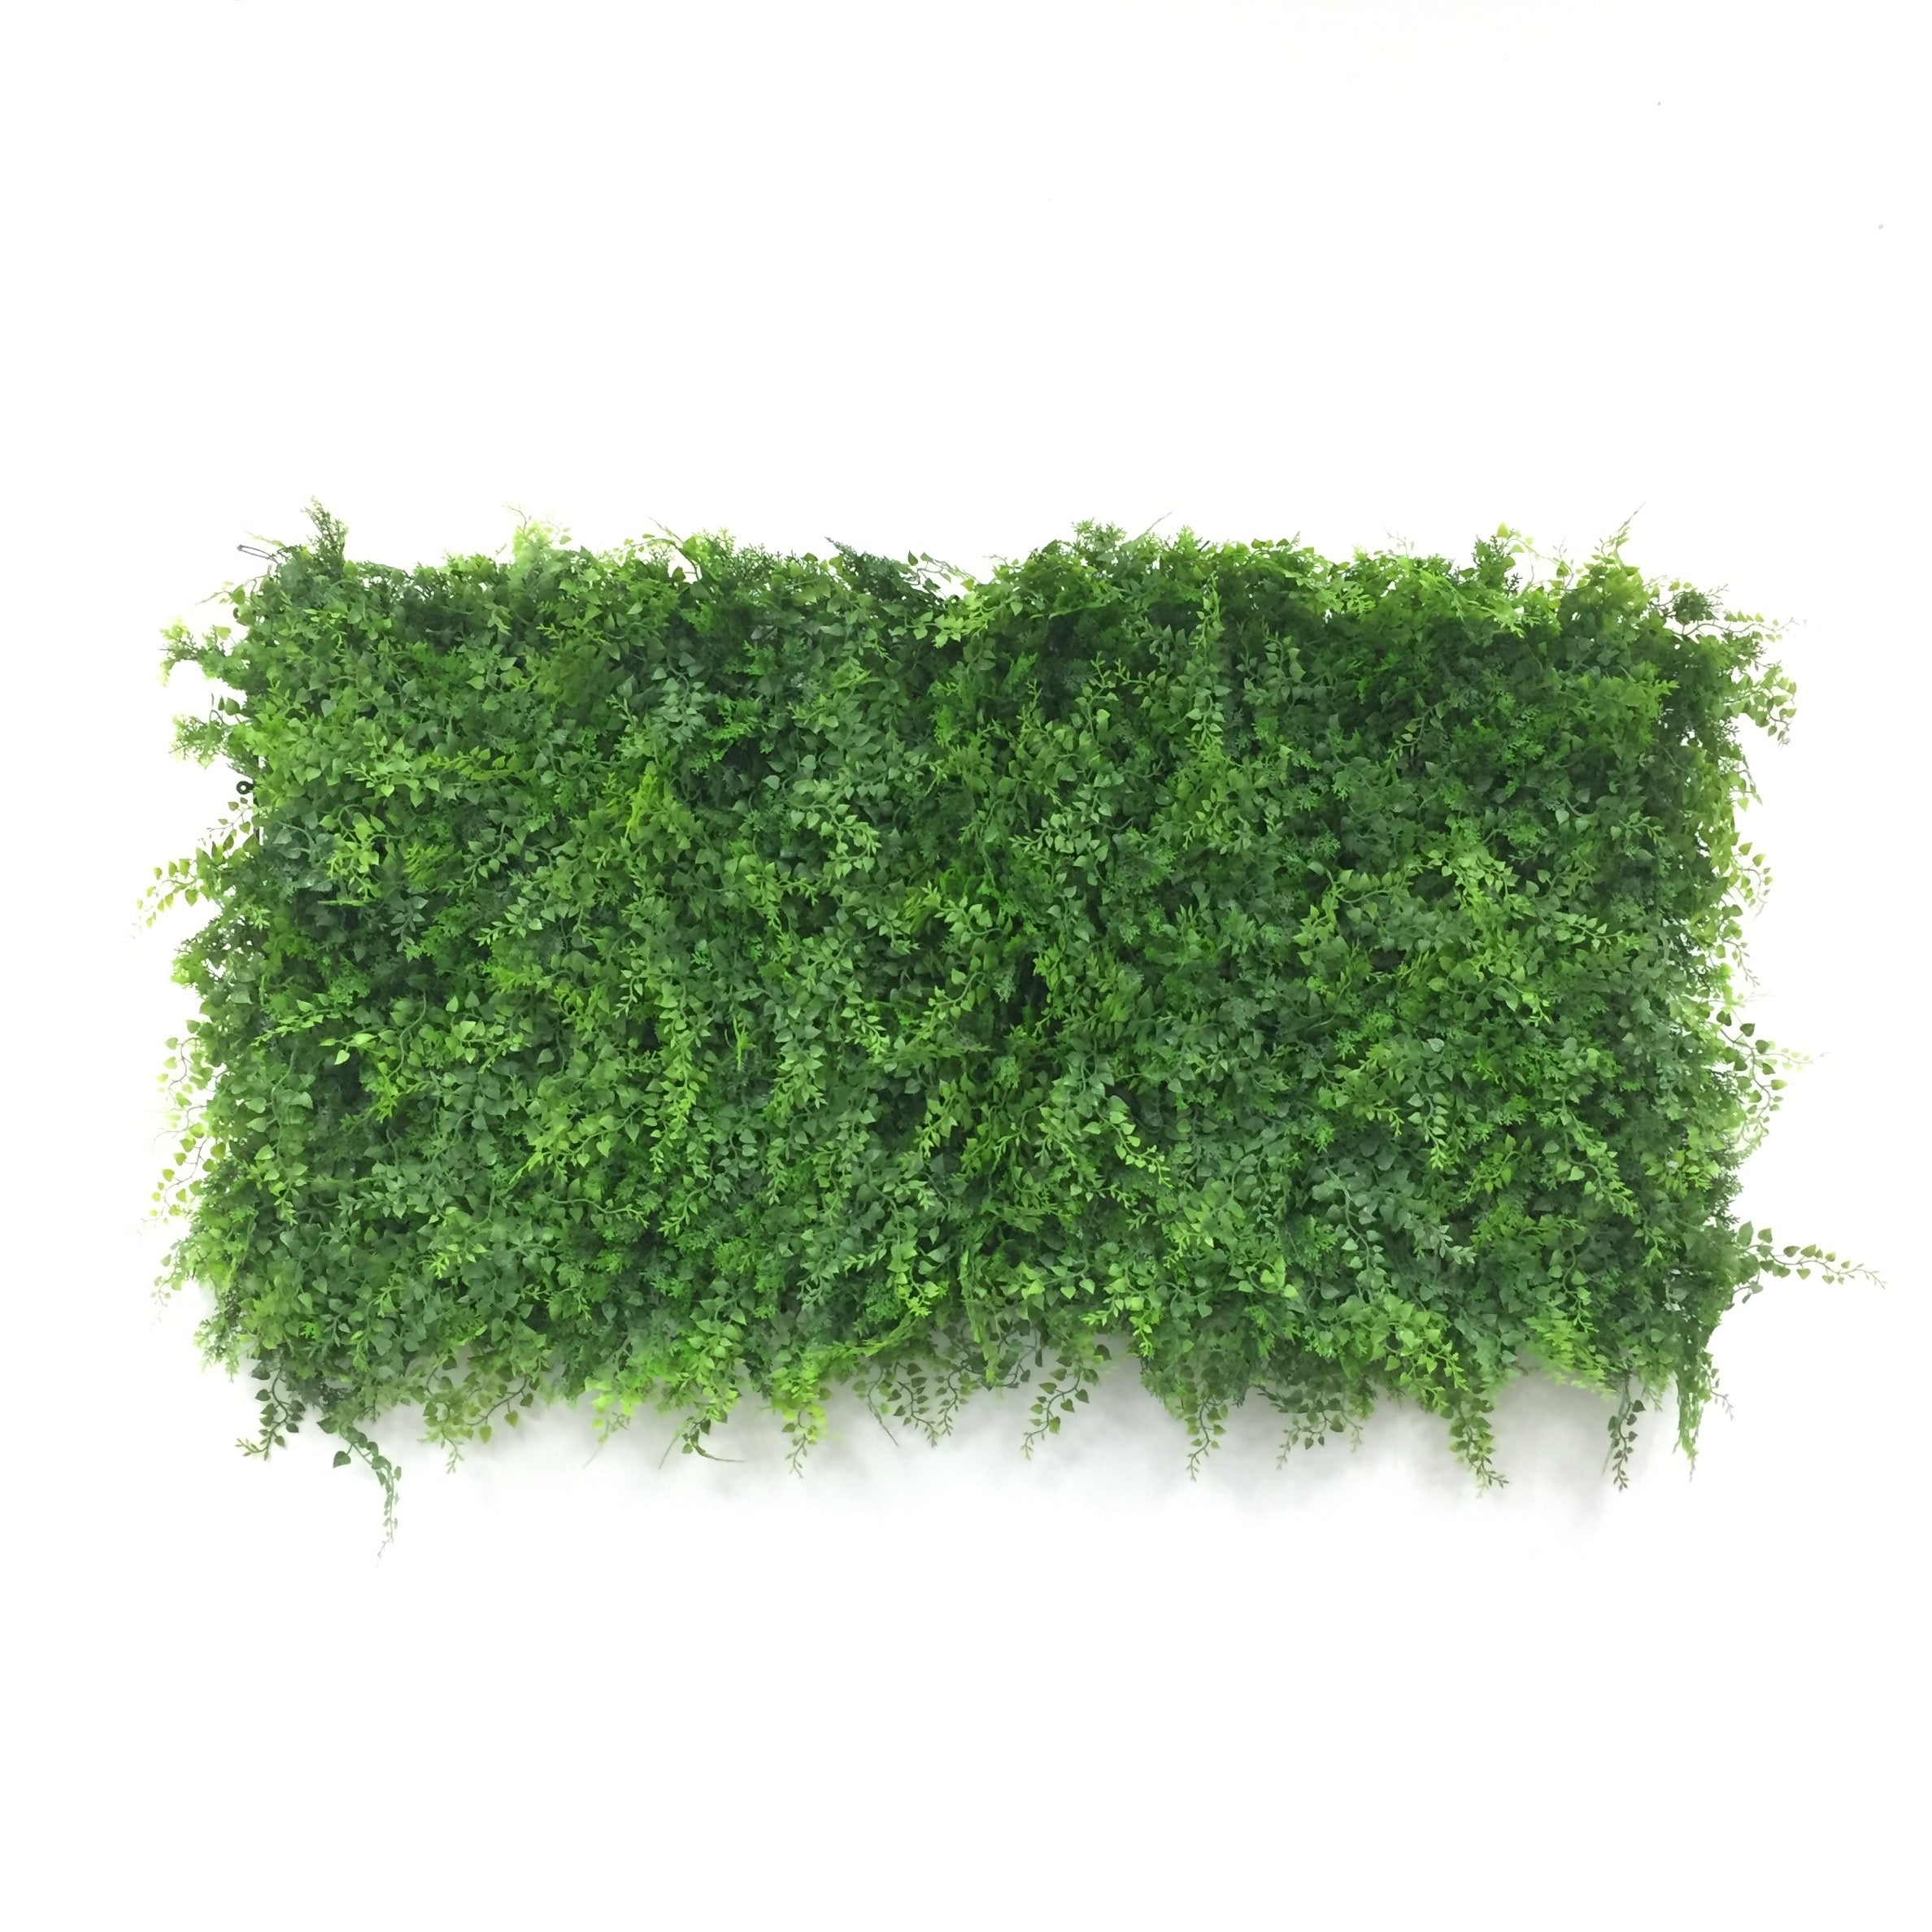 ResiGrass Artificial Green Wall, ResiLeaf Mixed - 1 Box ( 3 m2 )